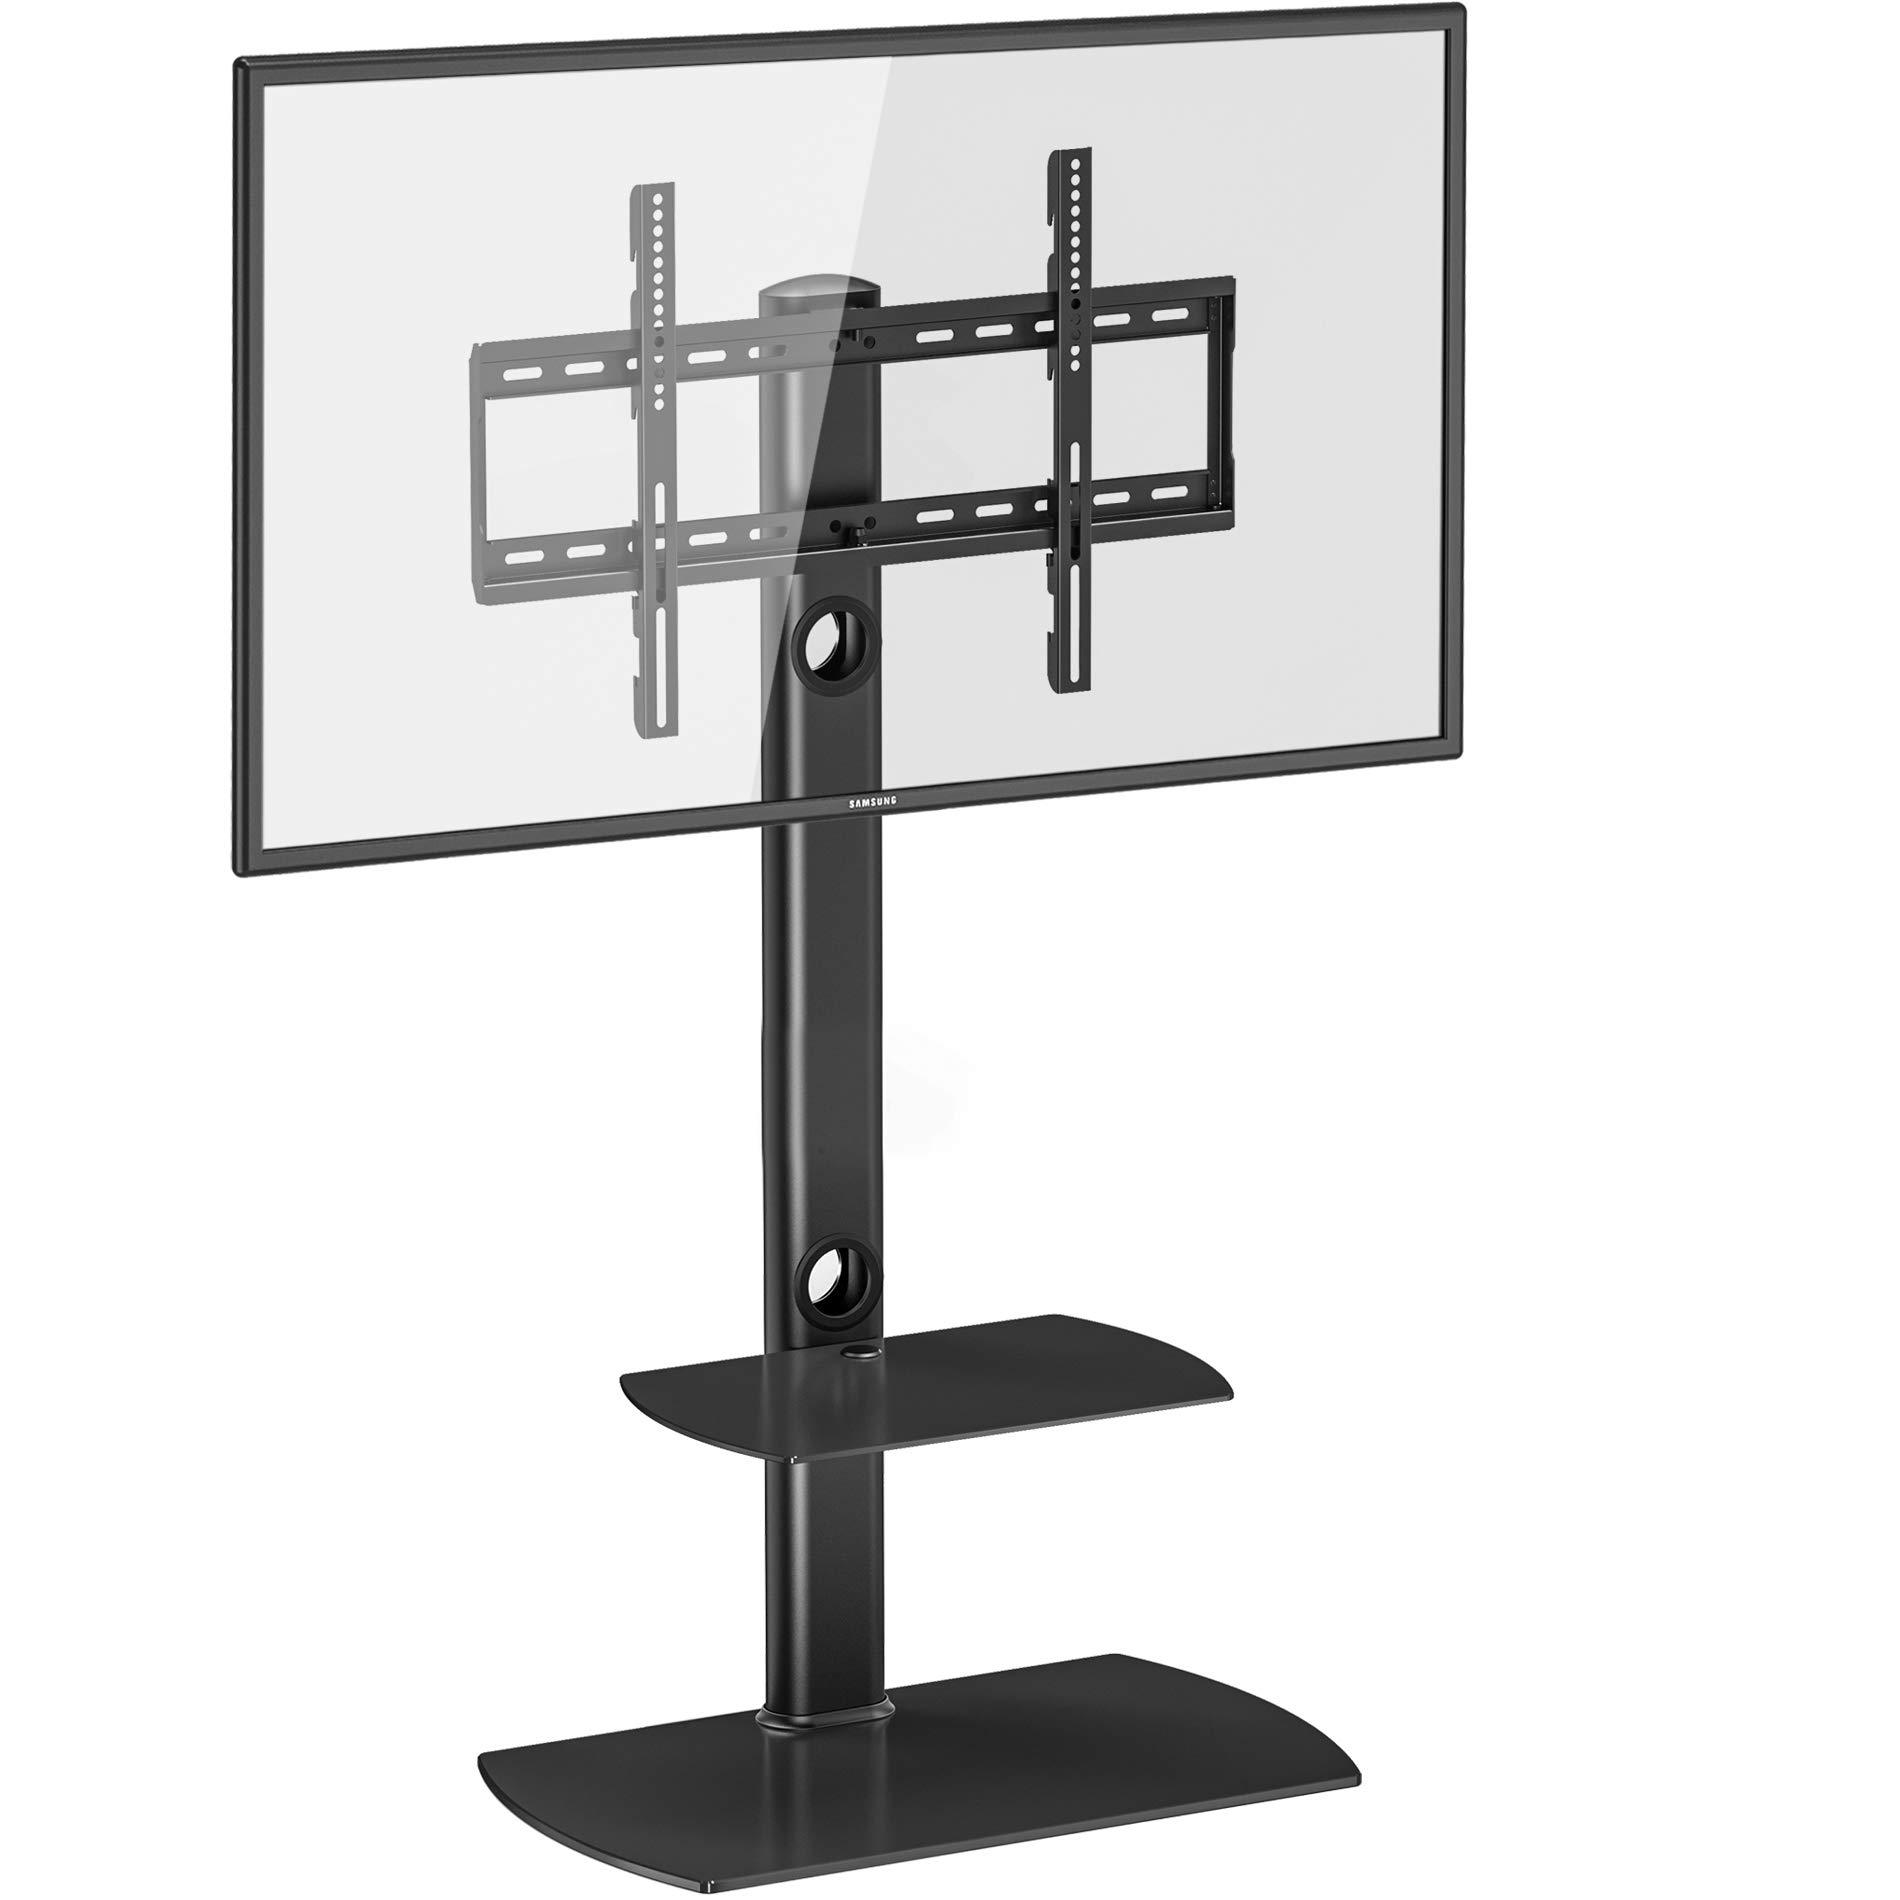 FITUEYES Floor TV Stand with Swivel Mount Height Adjustable for 32 to 65 inch LCD, LED OLED TVs TT206502GB